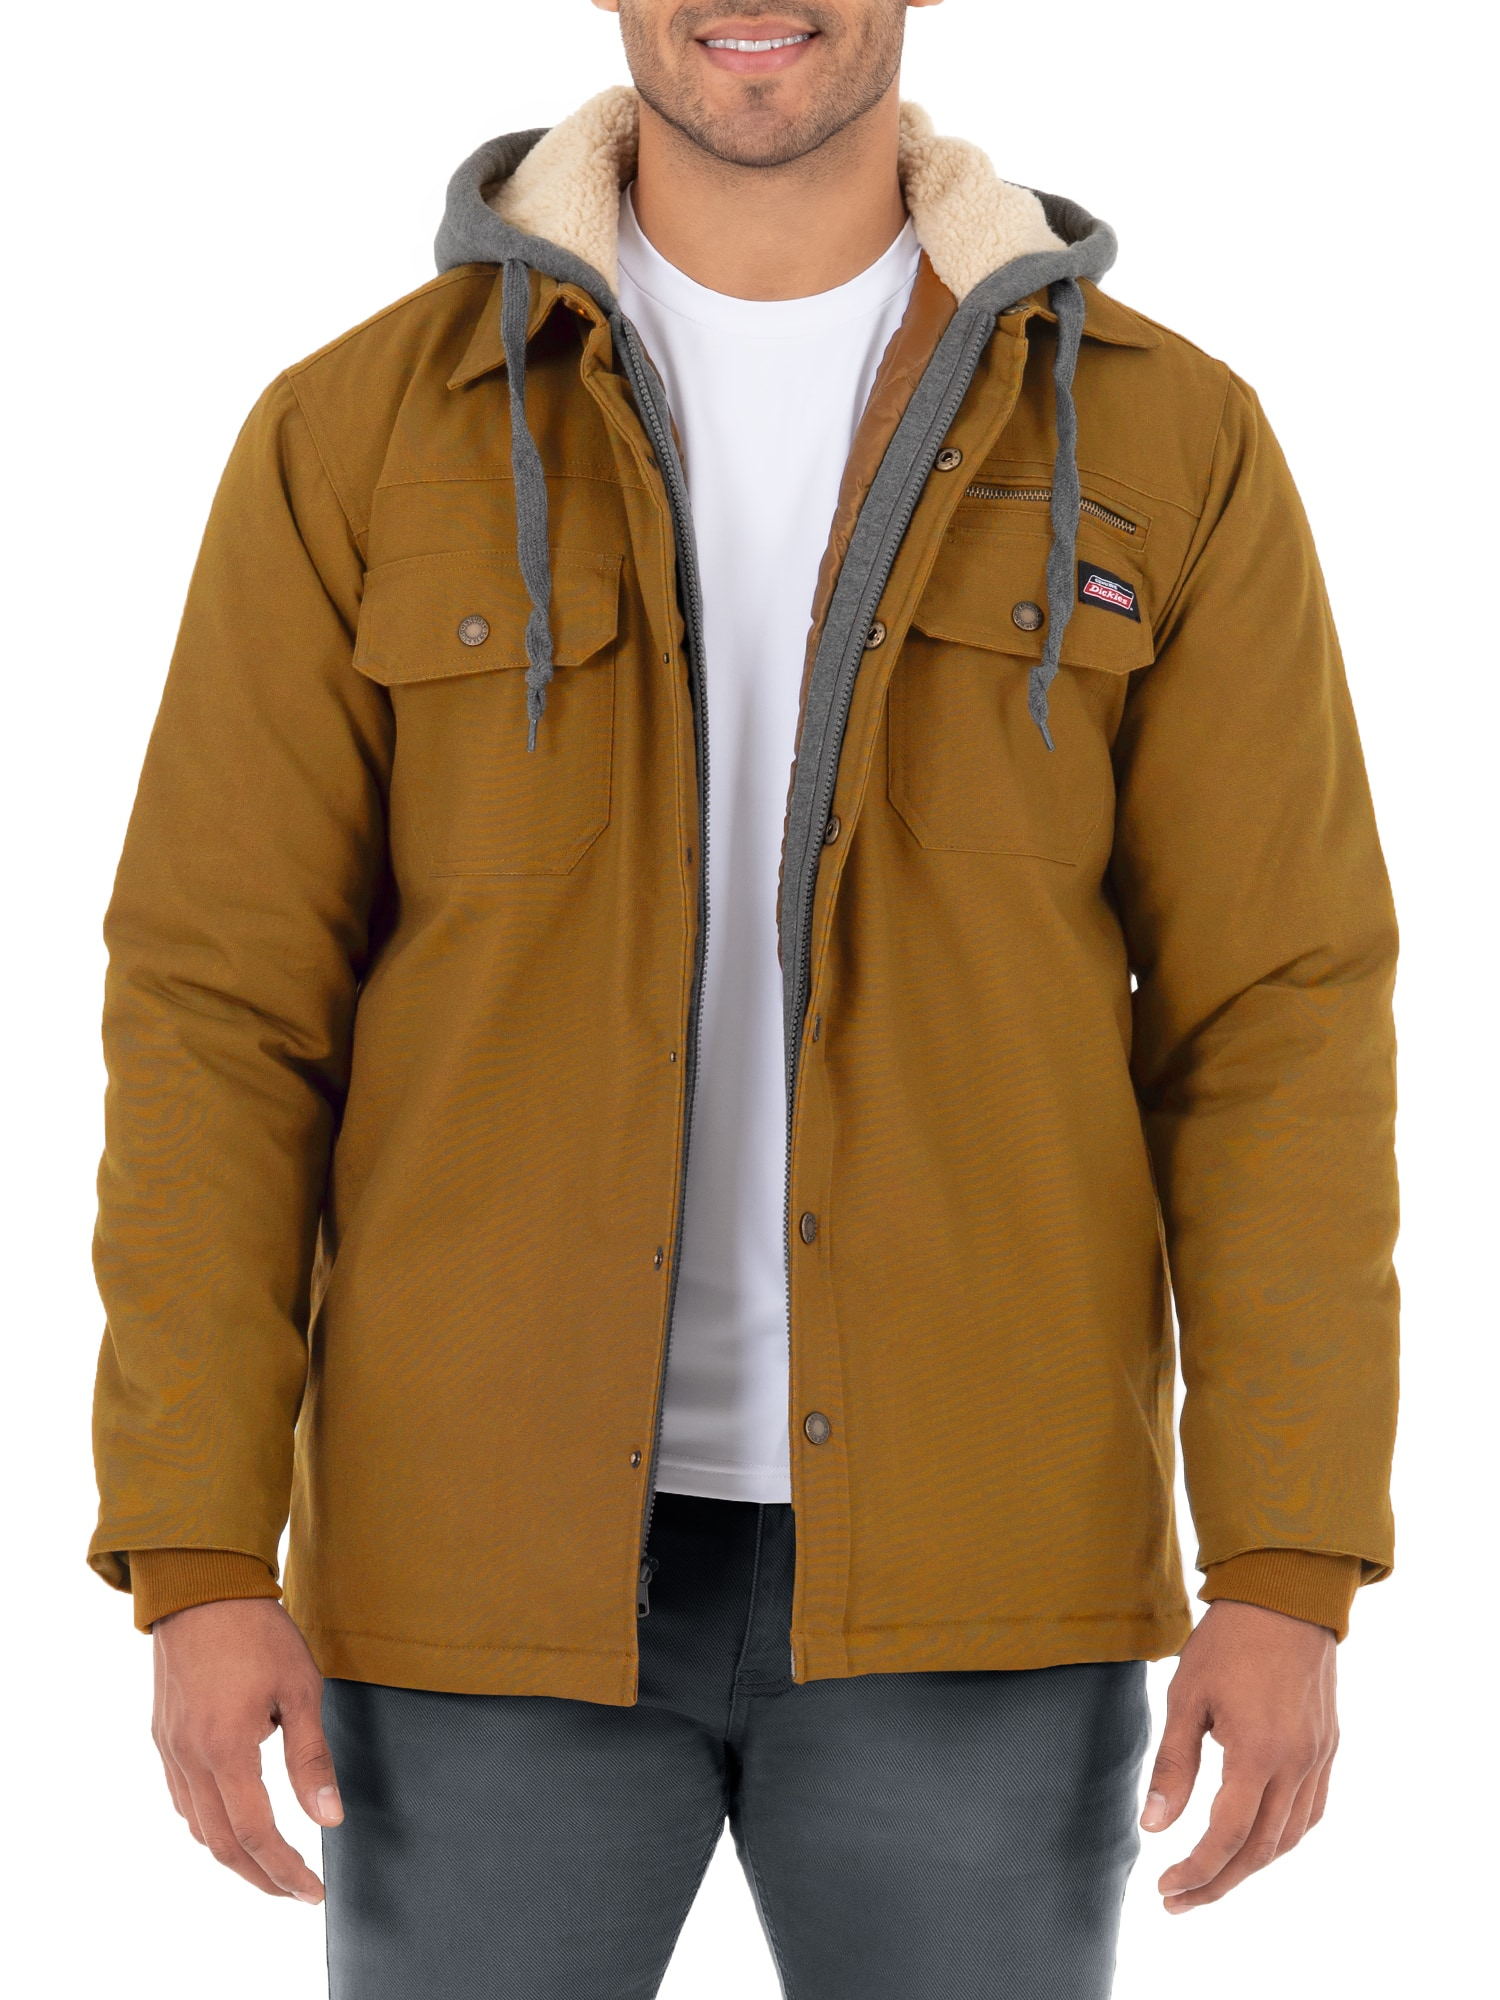 Dickies Men's Flex Canvas Jacket $7 YMMV